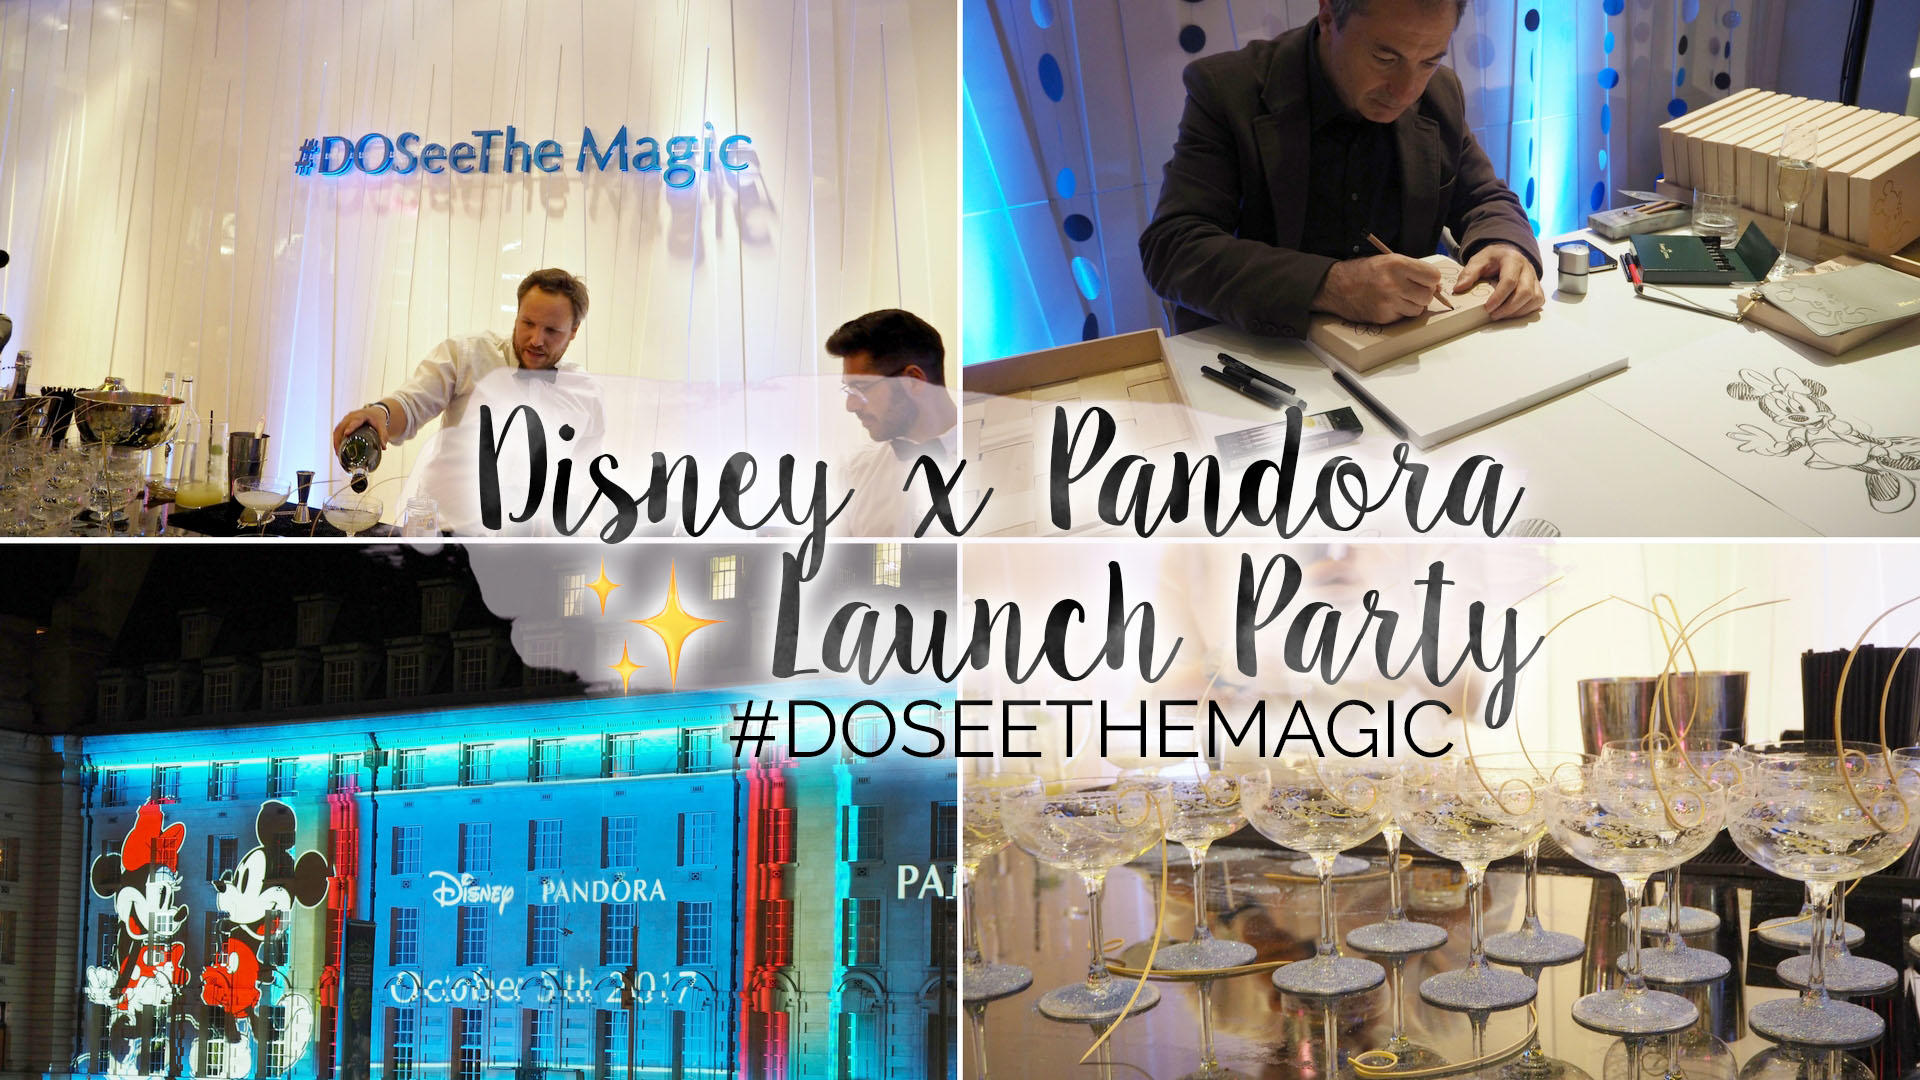 Pandora x Disney Launch Party - #DOSeeTheMagic || Life Lately